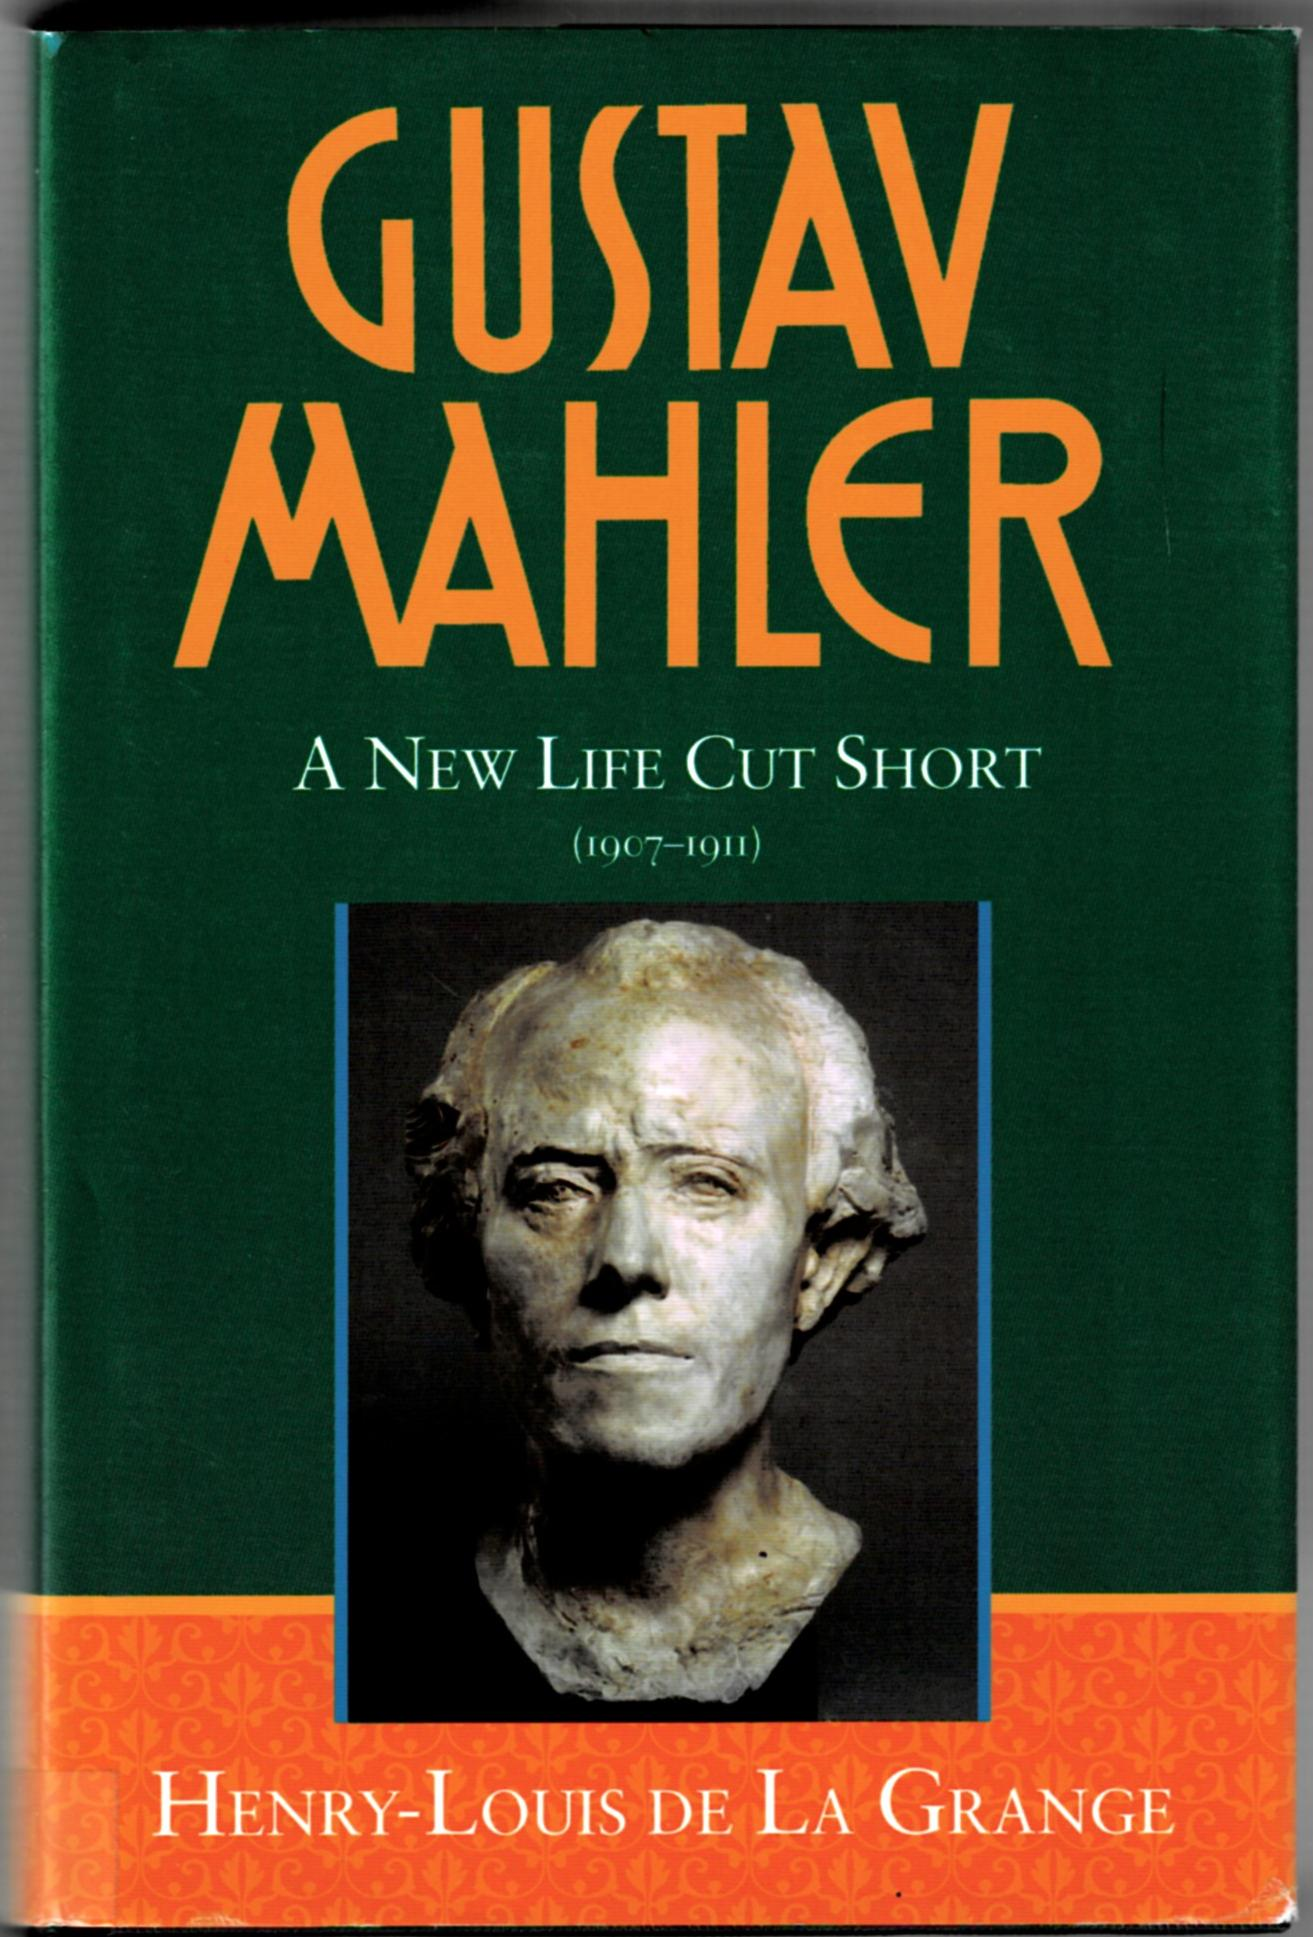 Image for Gustav Mahler, Vol. 4: A New Life Cut Short (1907-1911)